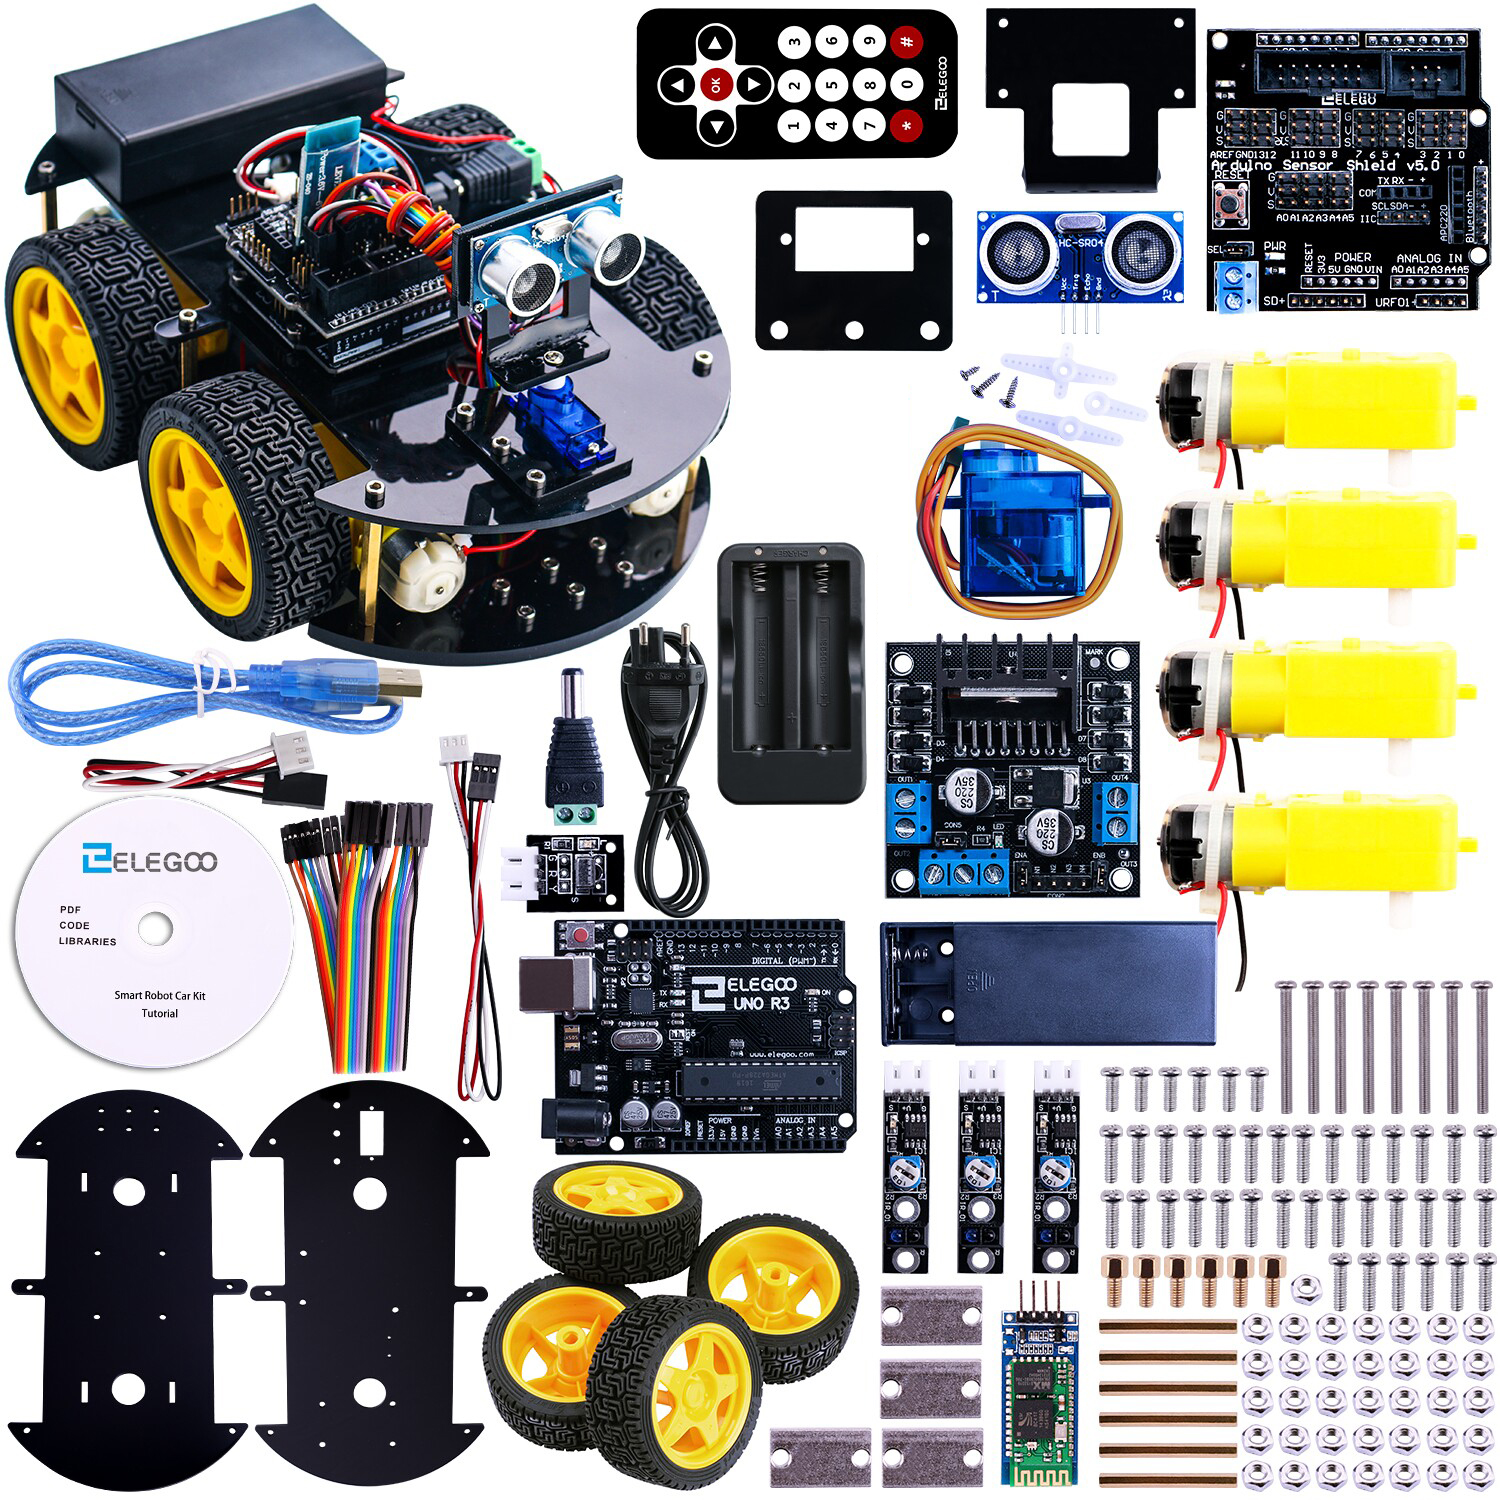 uno projet intelligent robot voiture kit avec uno r3 capteur ultrasons bluetooth module. Black Bedroom Furniture Sets. Home Design Ideas